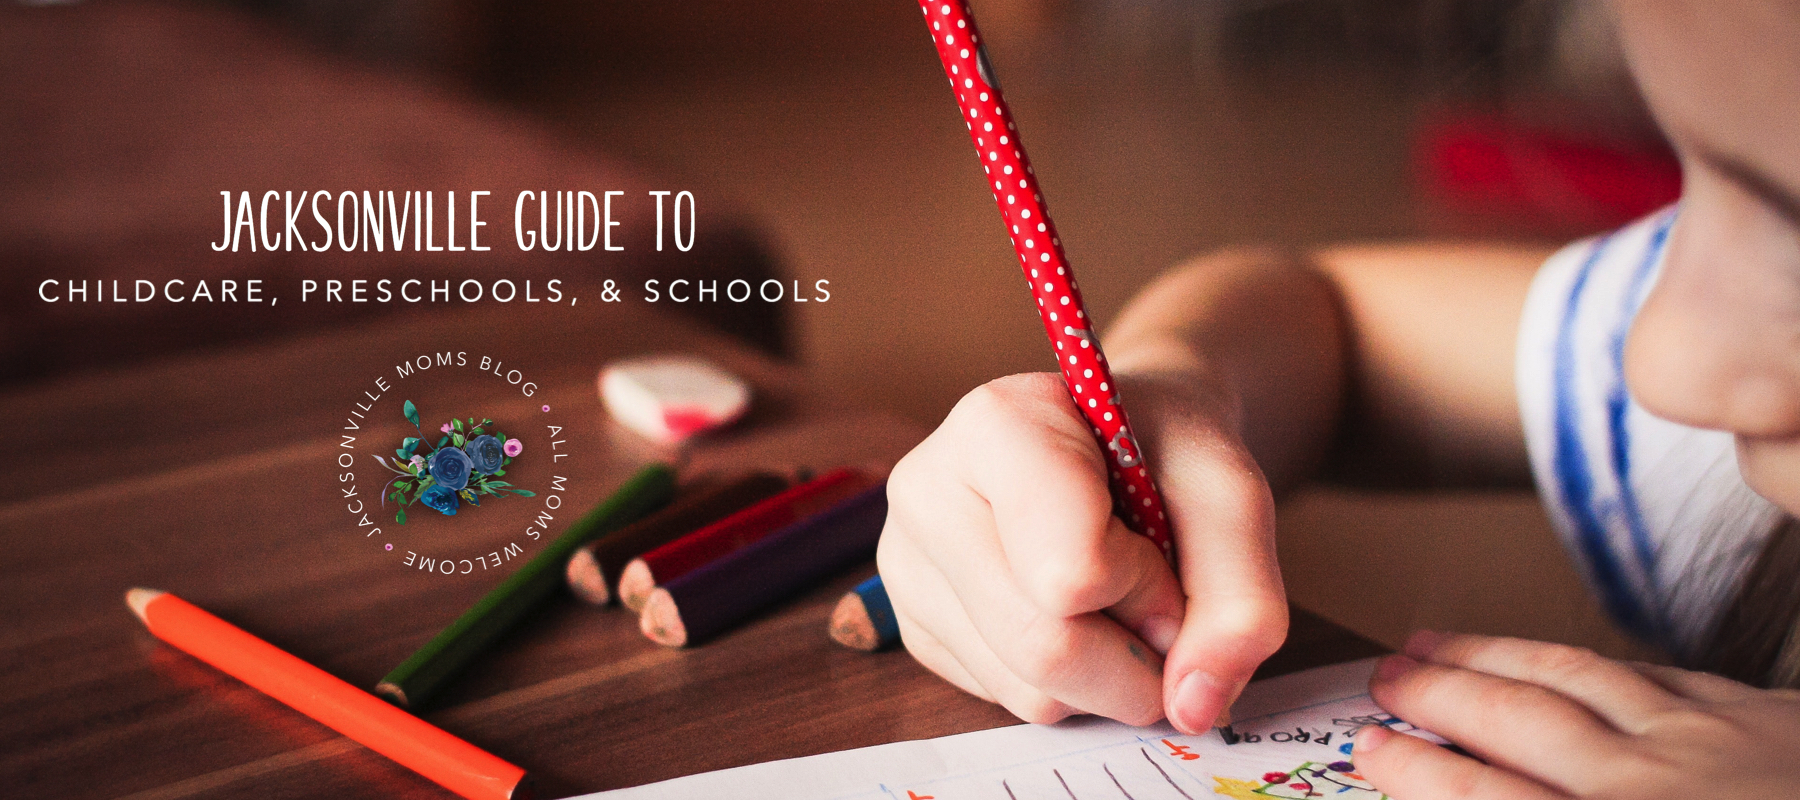 Guide to Child Care, Preschools, & Schools in Jacksonville